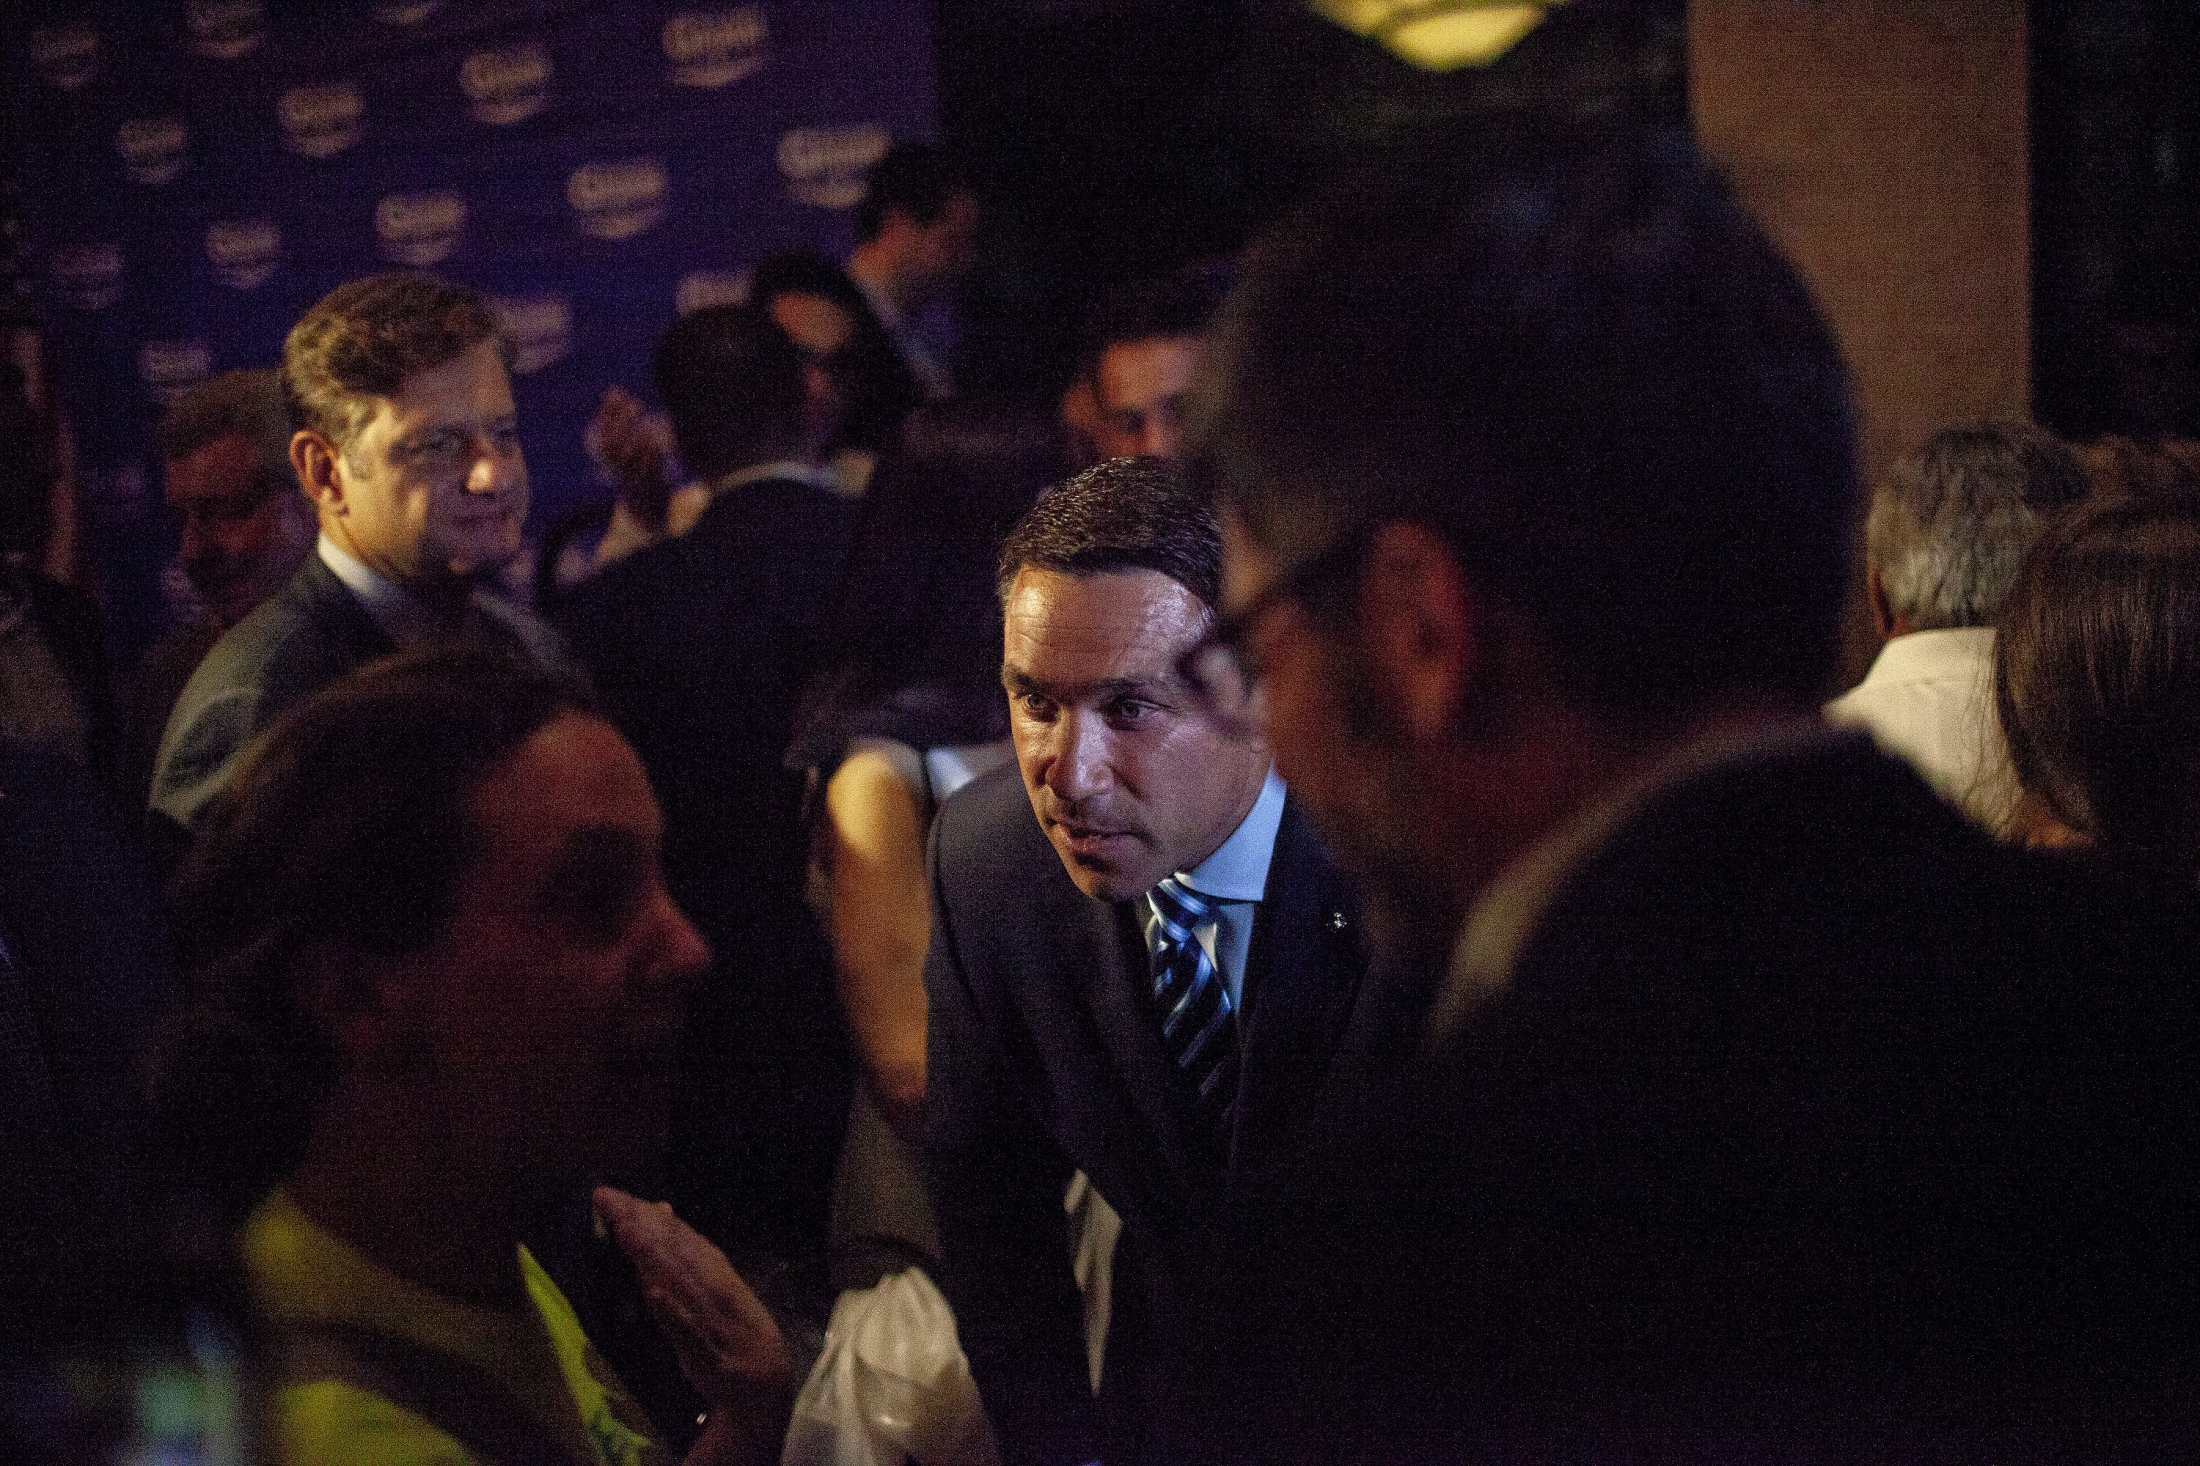 Tales from Trumpland, Republican Michael Grimm, after he conceded to Dan Donovan at the Hilton Garden Inn on Staten Island during the Republican congressional primary, came down to greet his supporters. Donovan had 64.2% of the votes vs. Grimm's 35.8%. Michael Gerard Grimm (born February 7, 1970) is an American businessman, convicted felon, retired Marine and politician who represented New York in the United States Congress from 2011 to 2015. Grimm represented New York's 13th congressional district during his first term, after which he represented New York's 11th congressional district. Both districts consisted of Staten Island and parts of Brooklyn. Grimm is a member of the Republican Party, and during his time in office was the only Republican to represent a significant portion of New York City. On July 17, 2015, Grimm was sentenced to eight months in prison for tax evasion. Staten Island, NY June 26, 2018 (Kevin C. Downs/Agence Cosmos)